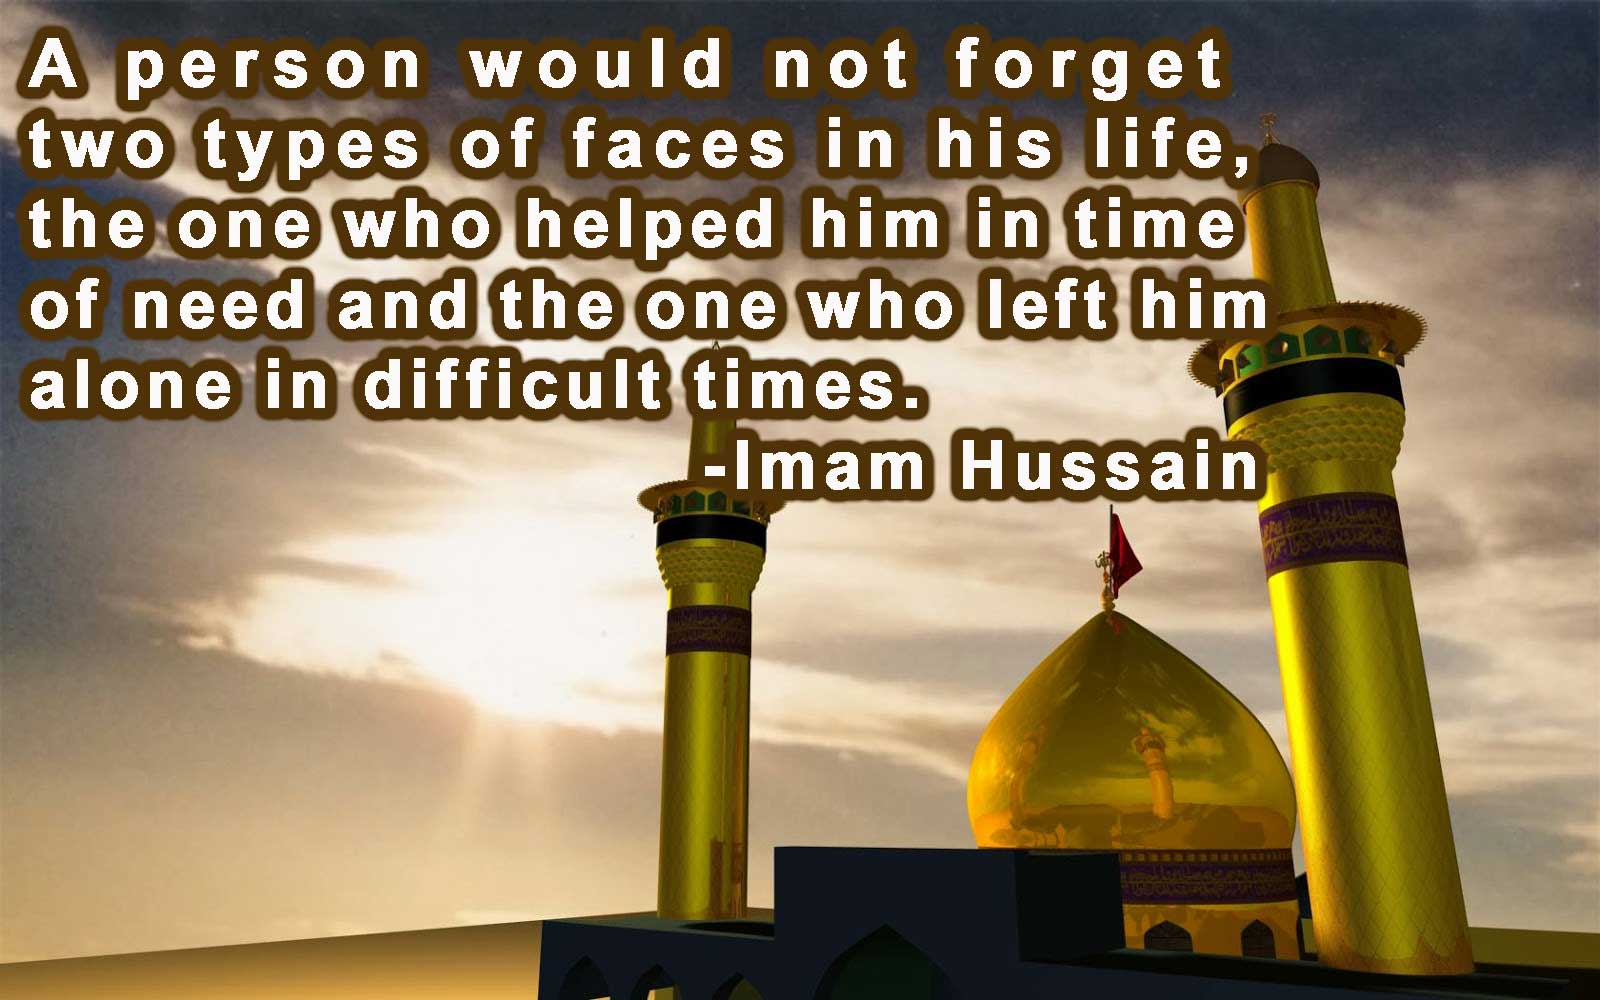 2. A person would not forget two types of faces in his life, the one who helped him in time of need and the one who left him alone in difficult times. -Imam Hussain